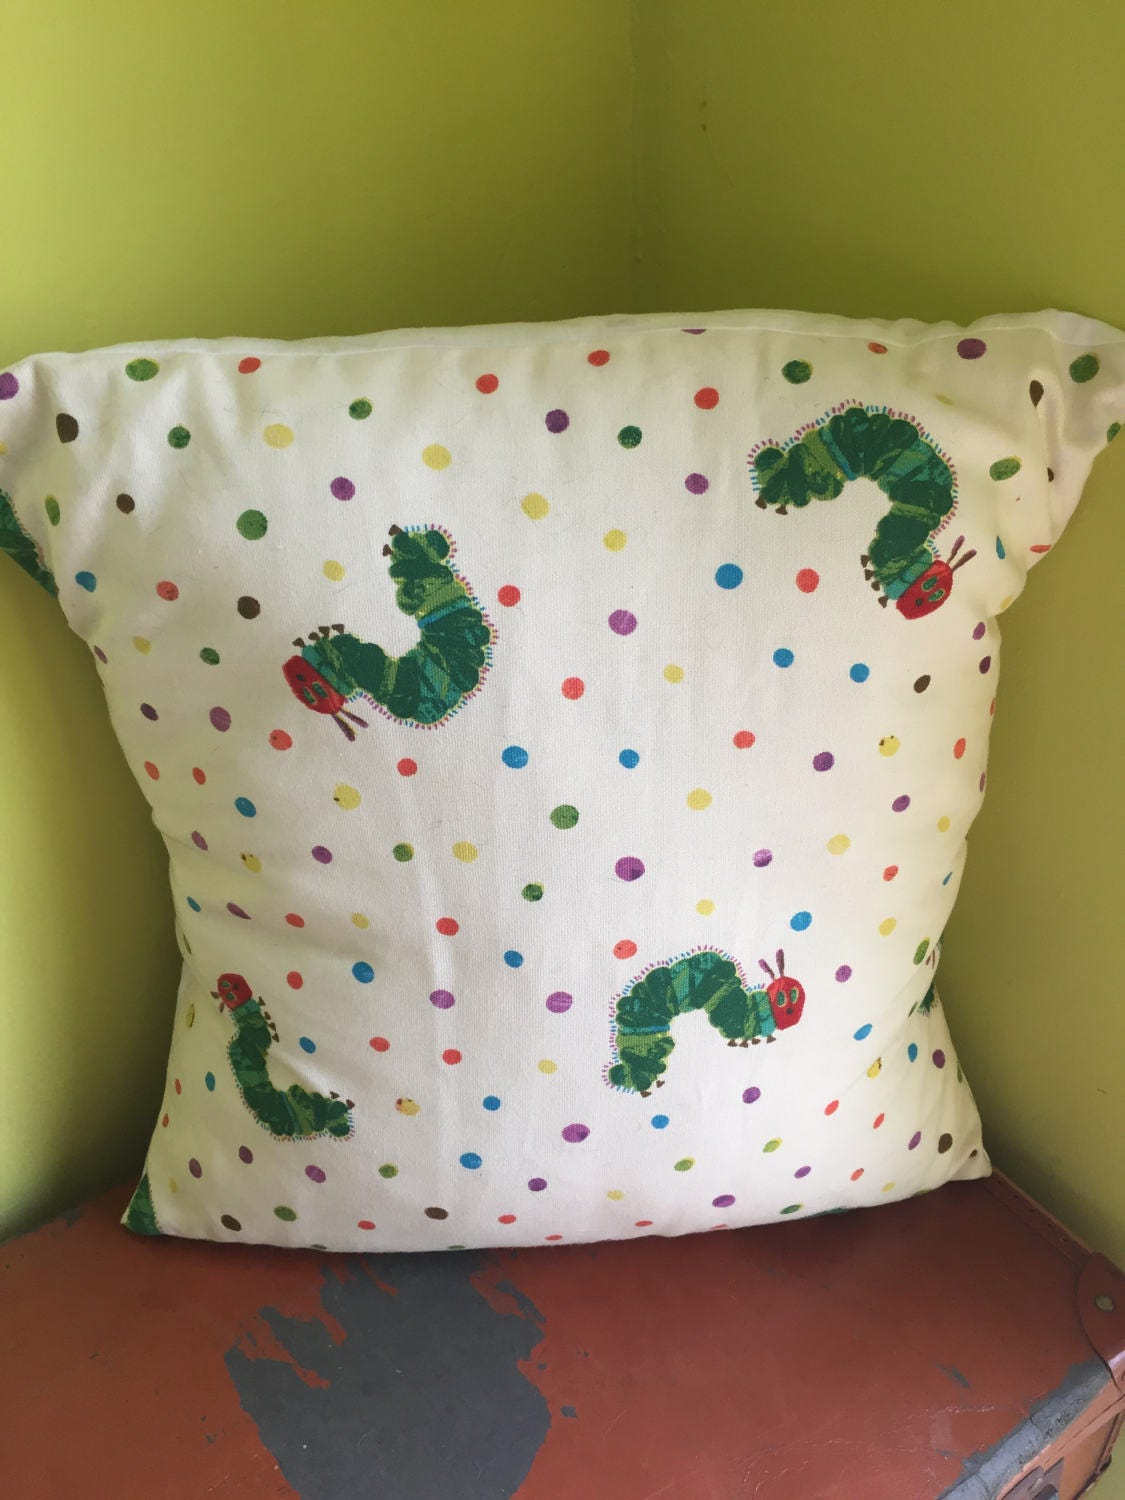 Hungry Caterpillar Cushion With Insert  Book Lover  Teacher  Library  Reading  Book Corner  Childrens Room  Eric Carle